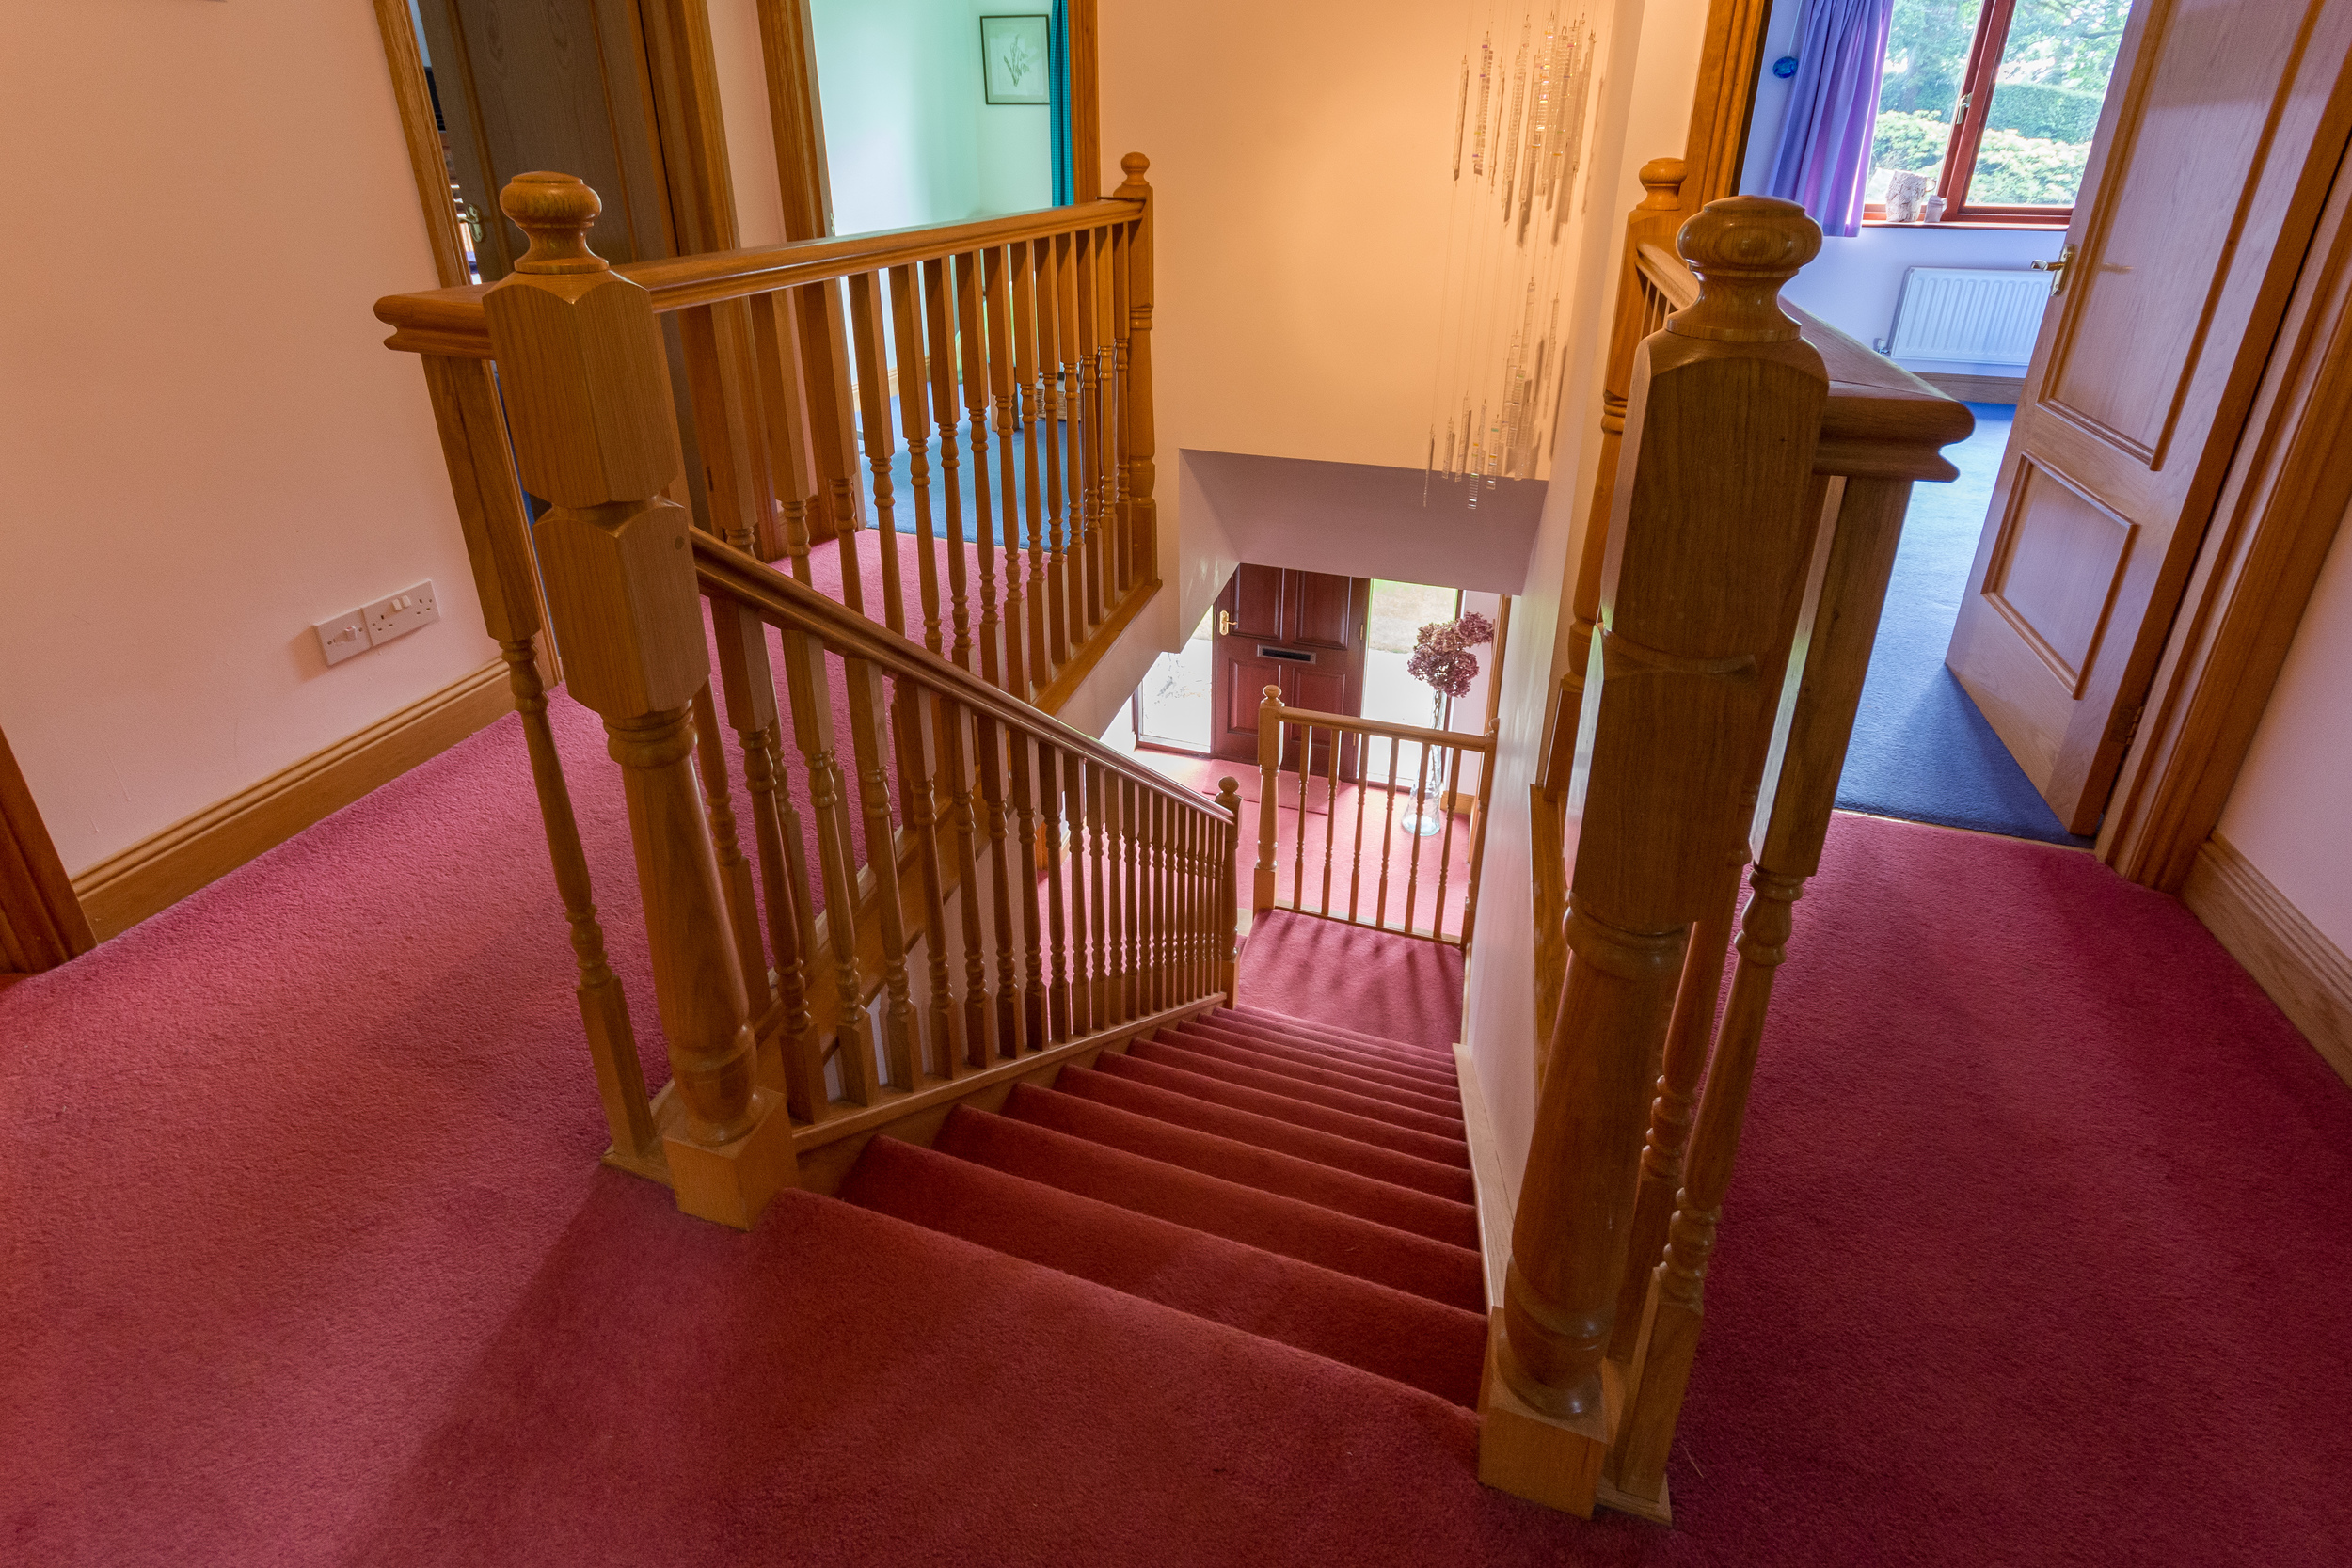 Upstairs Landing & Stairs - Beech Nook Thornthwaite, Keswick Holidays Self Catering.jpg